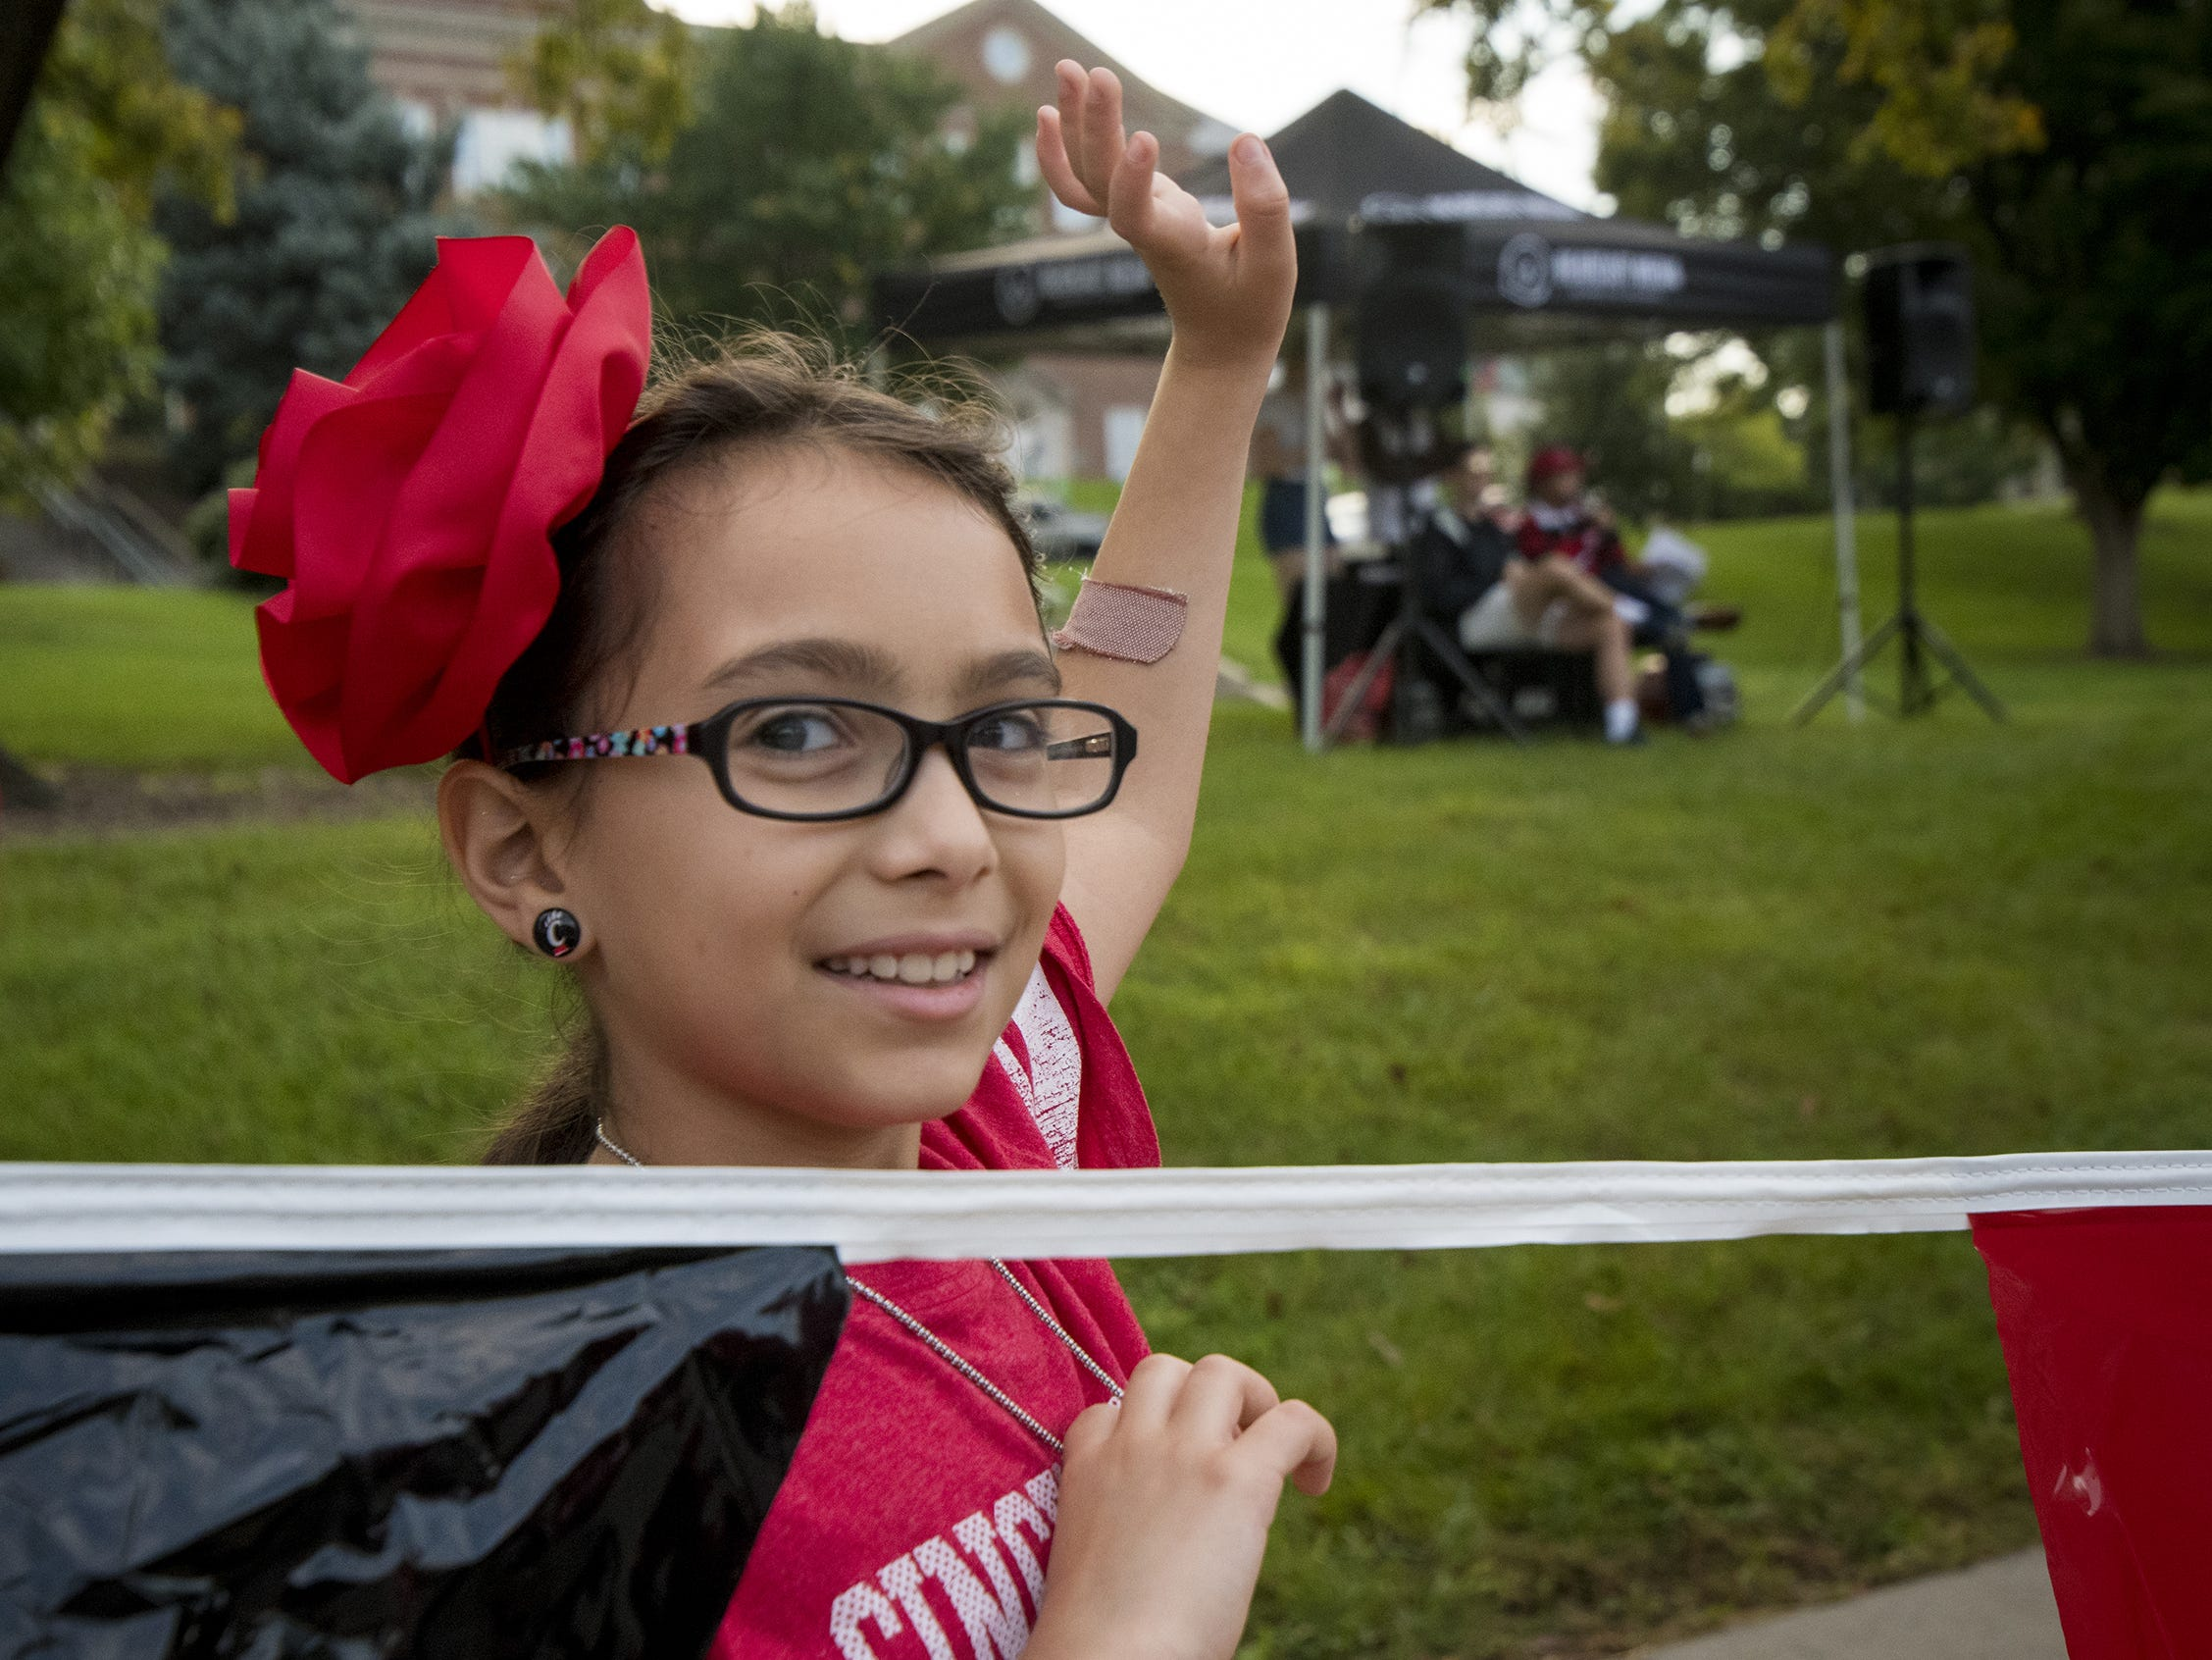 Alejandra Villalva, 9, watches the annual University of Cincinnati Homecoming parade.